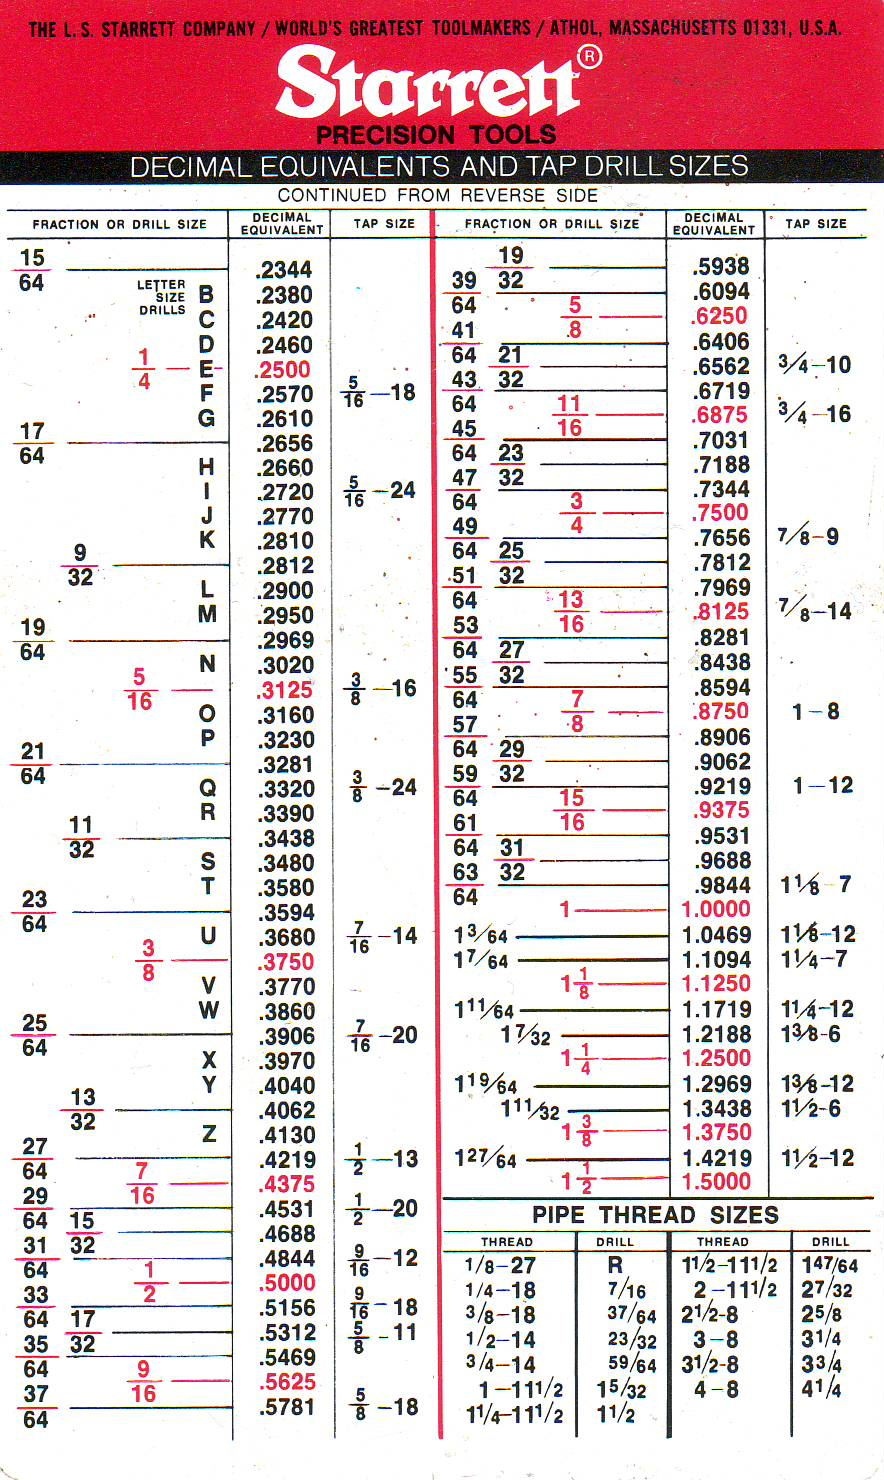 Decimal And Tap Drill Size Equivalents